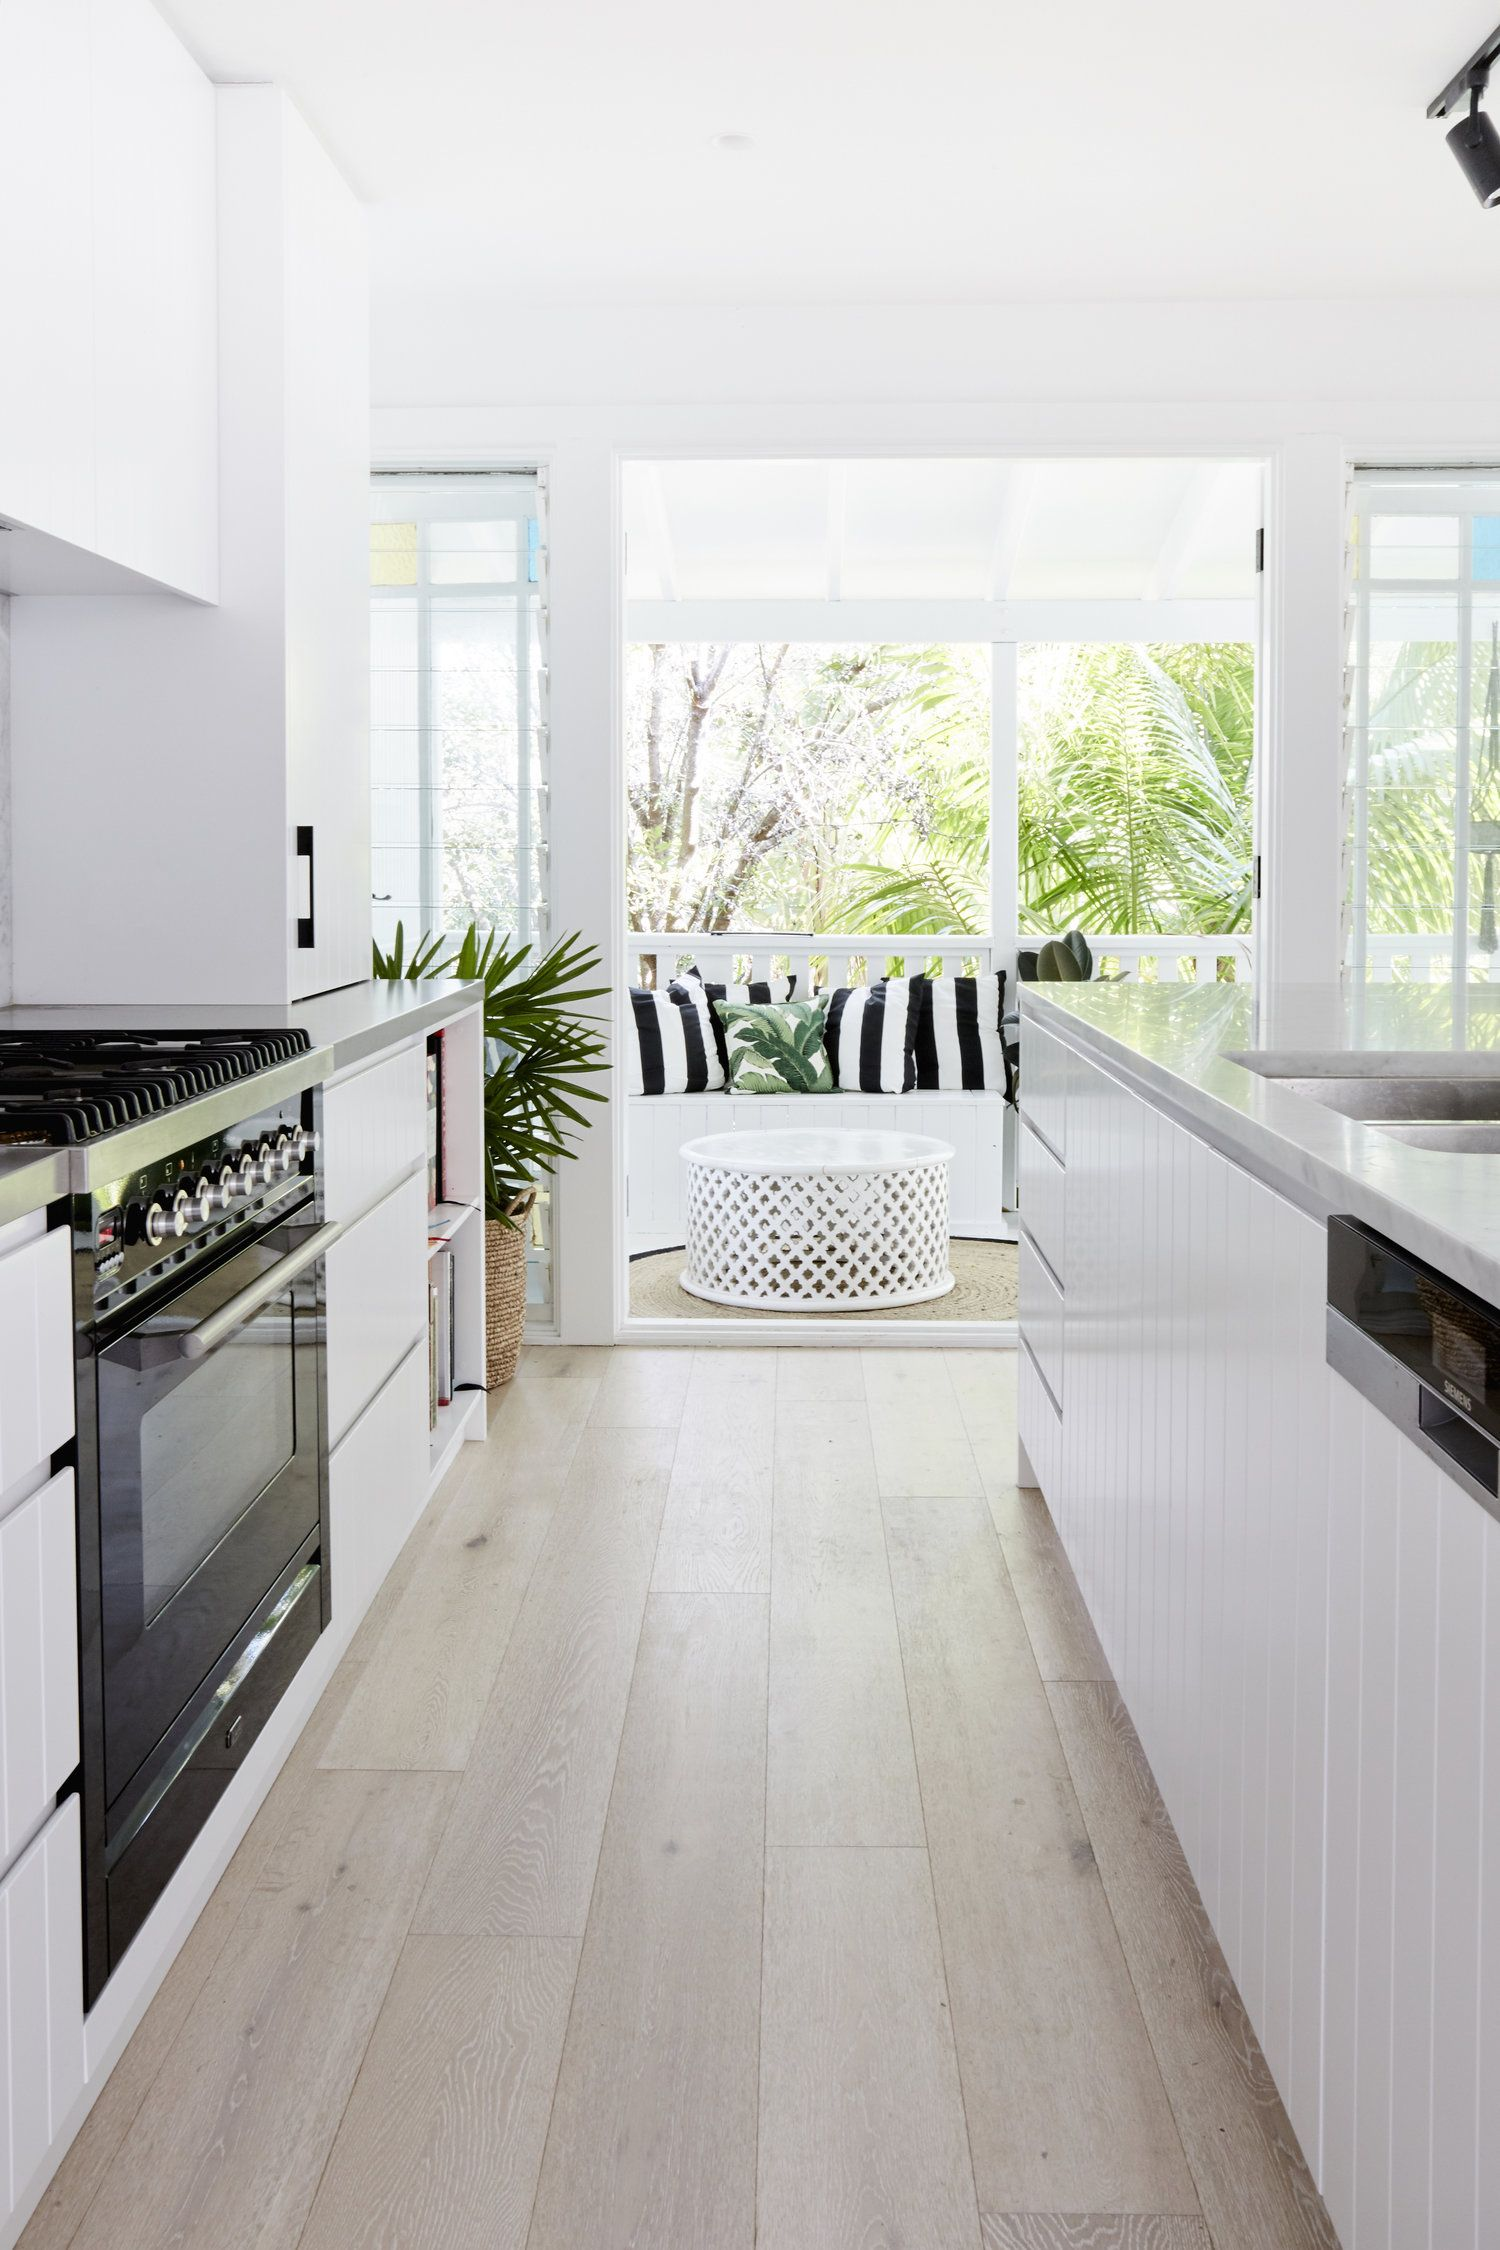 Simple Modern Kitchen. Light And Airy. Black And White